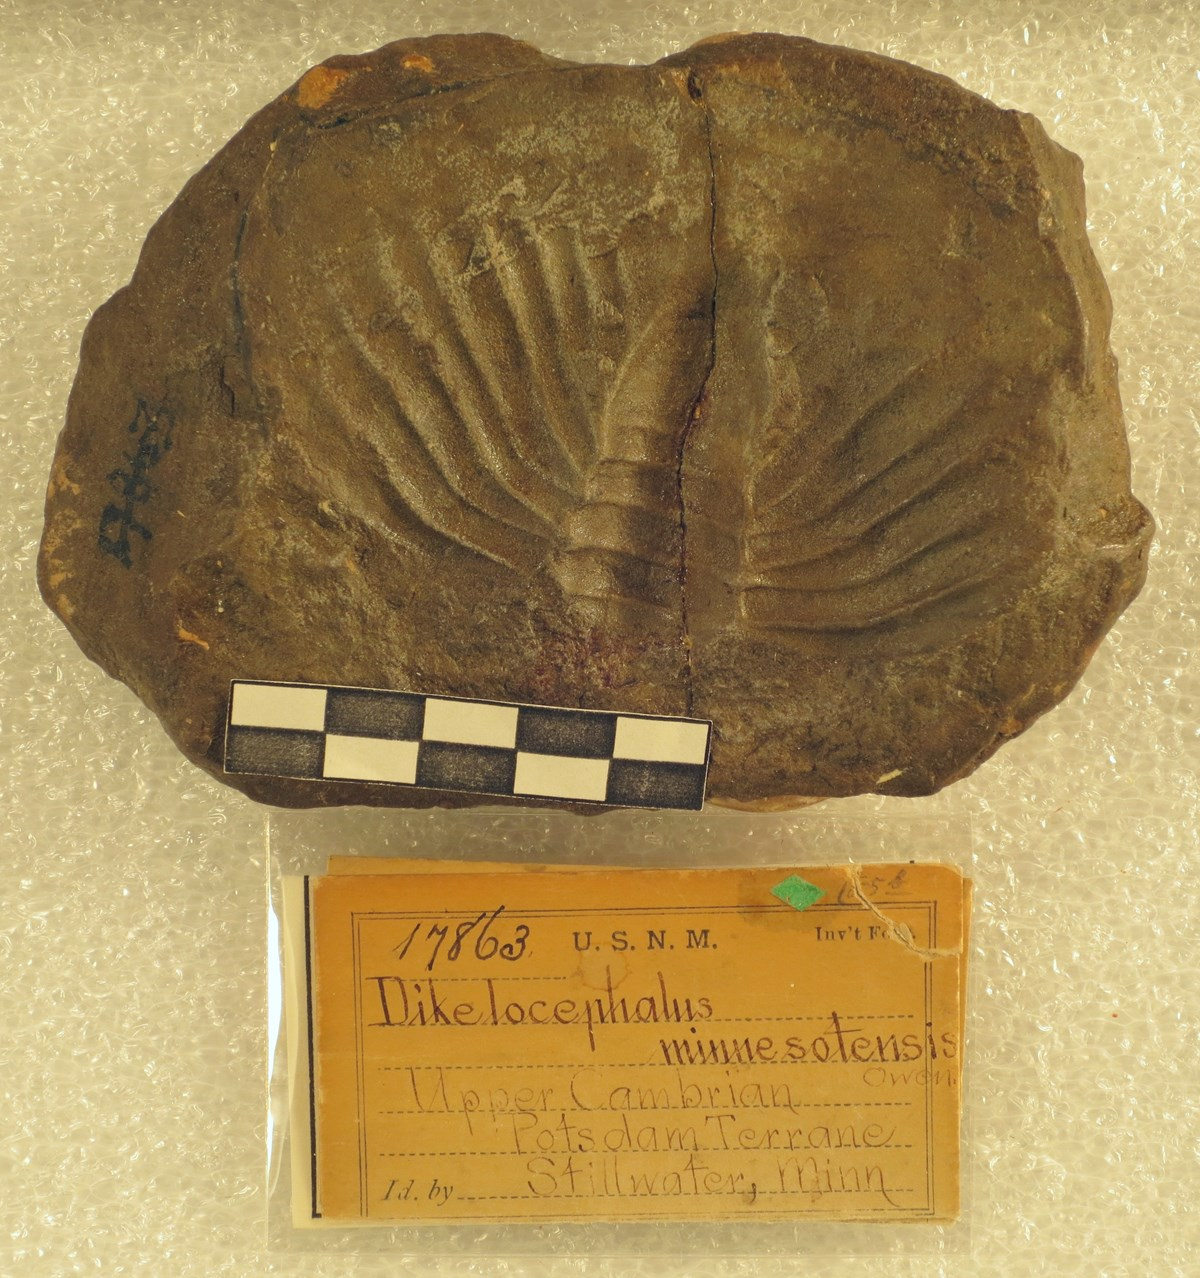 fossil trilobite with curation record card and scale bar